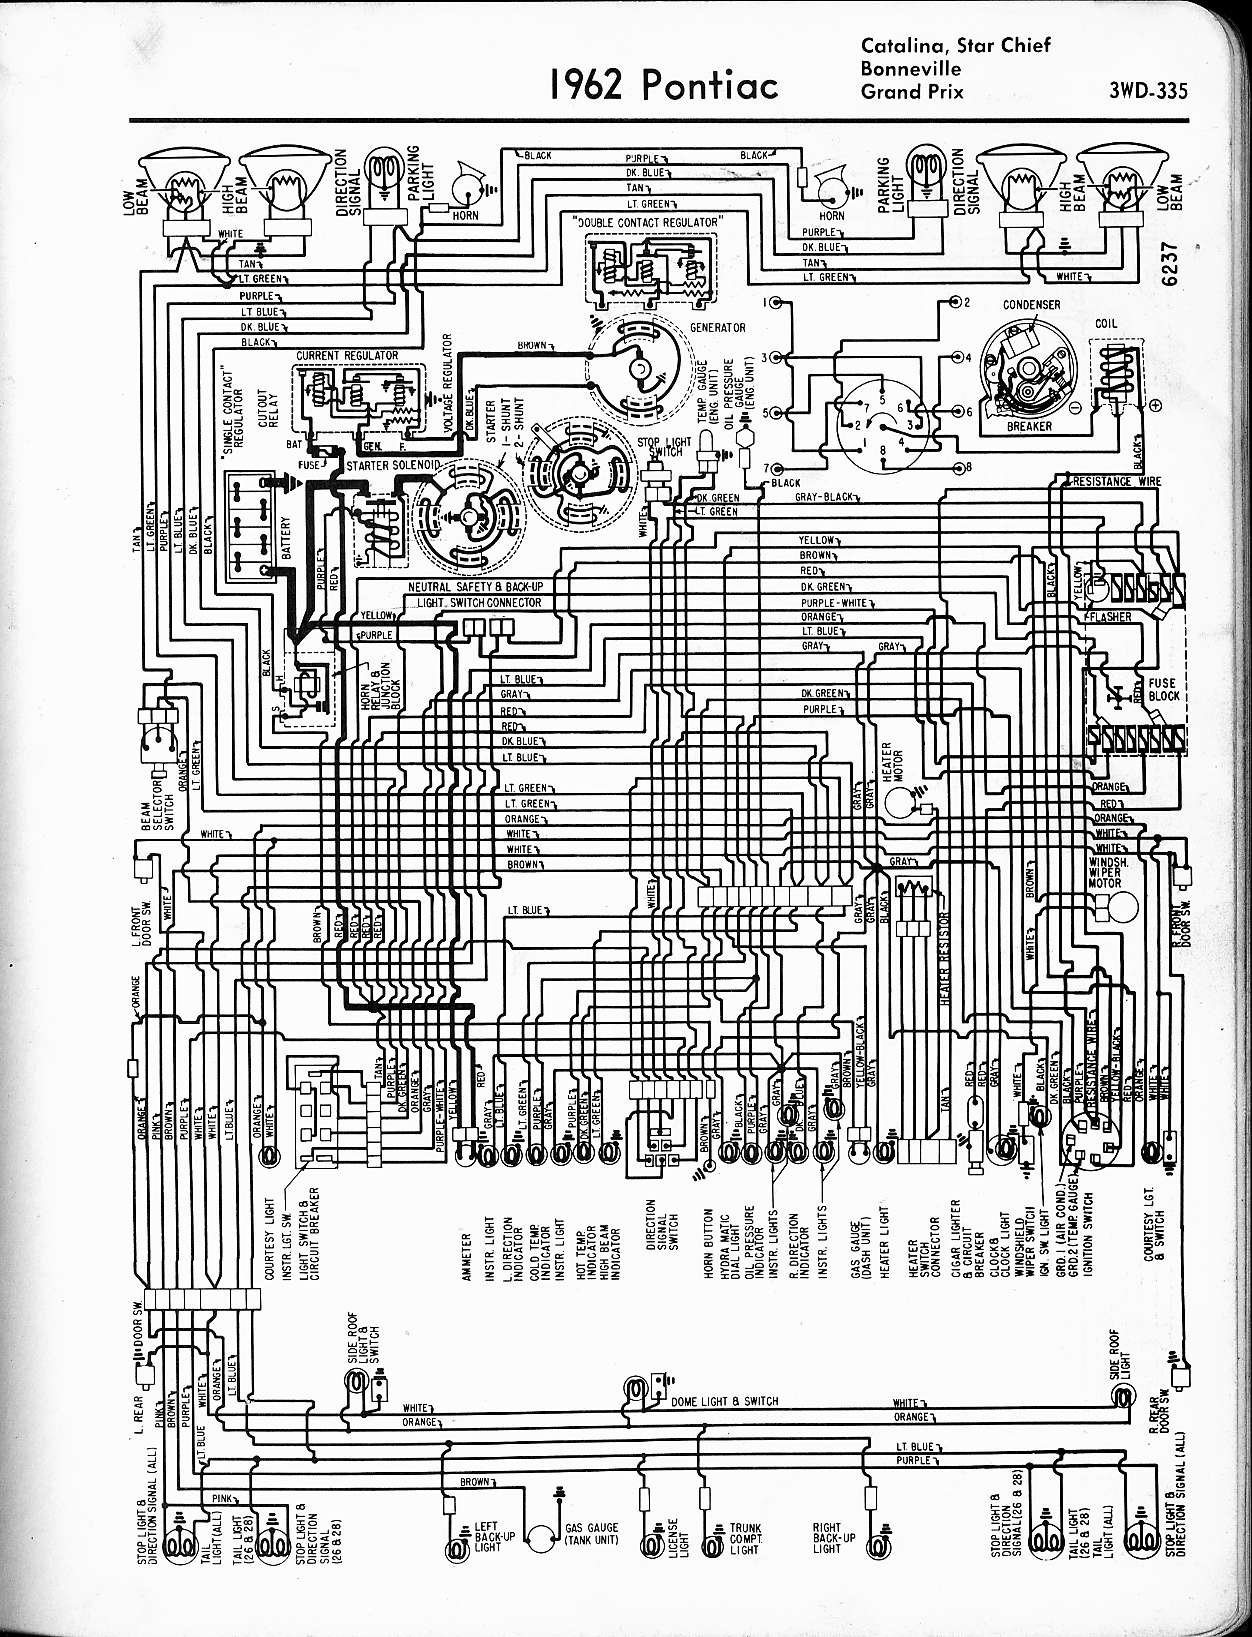 2000 Pontiac Bonneville Engine Diagram Free Wiring For You Fuse Buick Park Ave Portal Rh 15 4 Kaminari Music De 1997